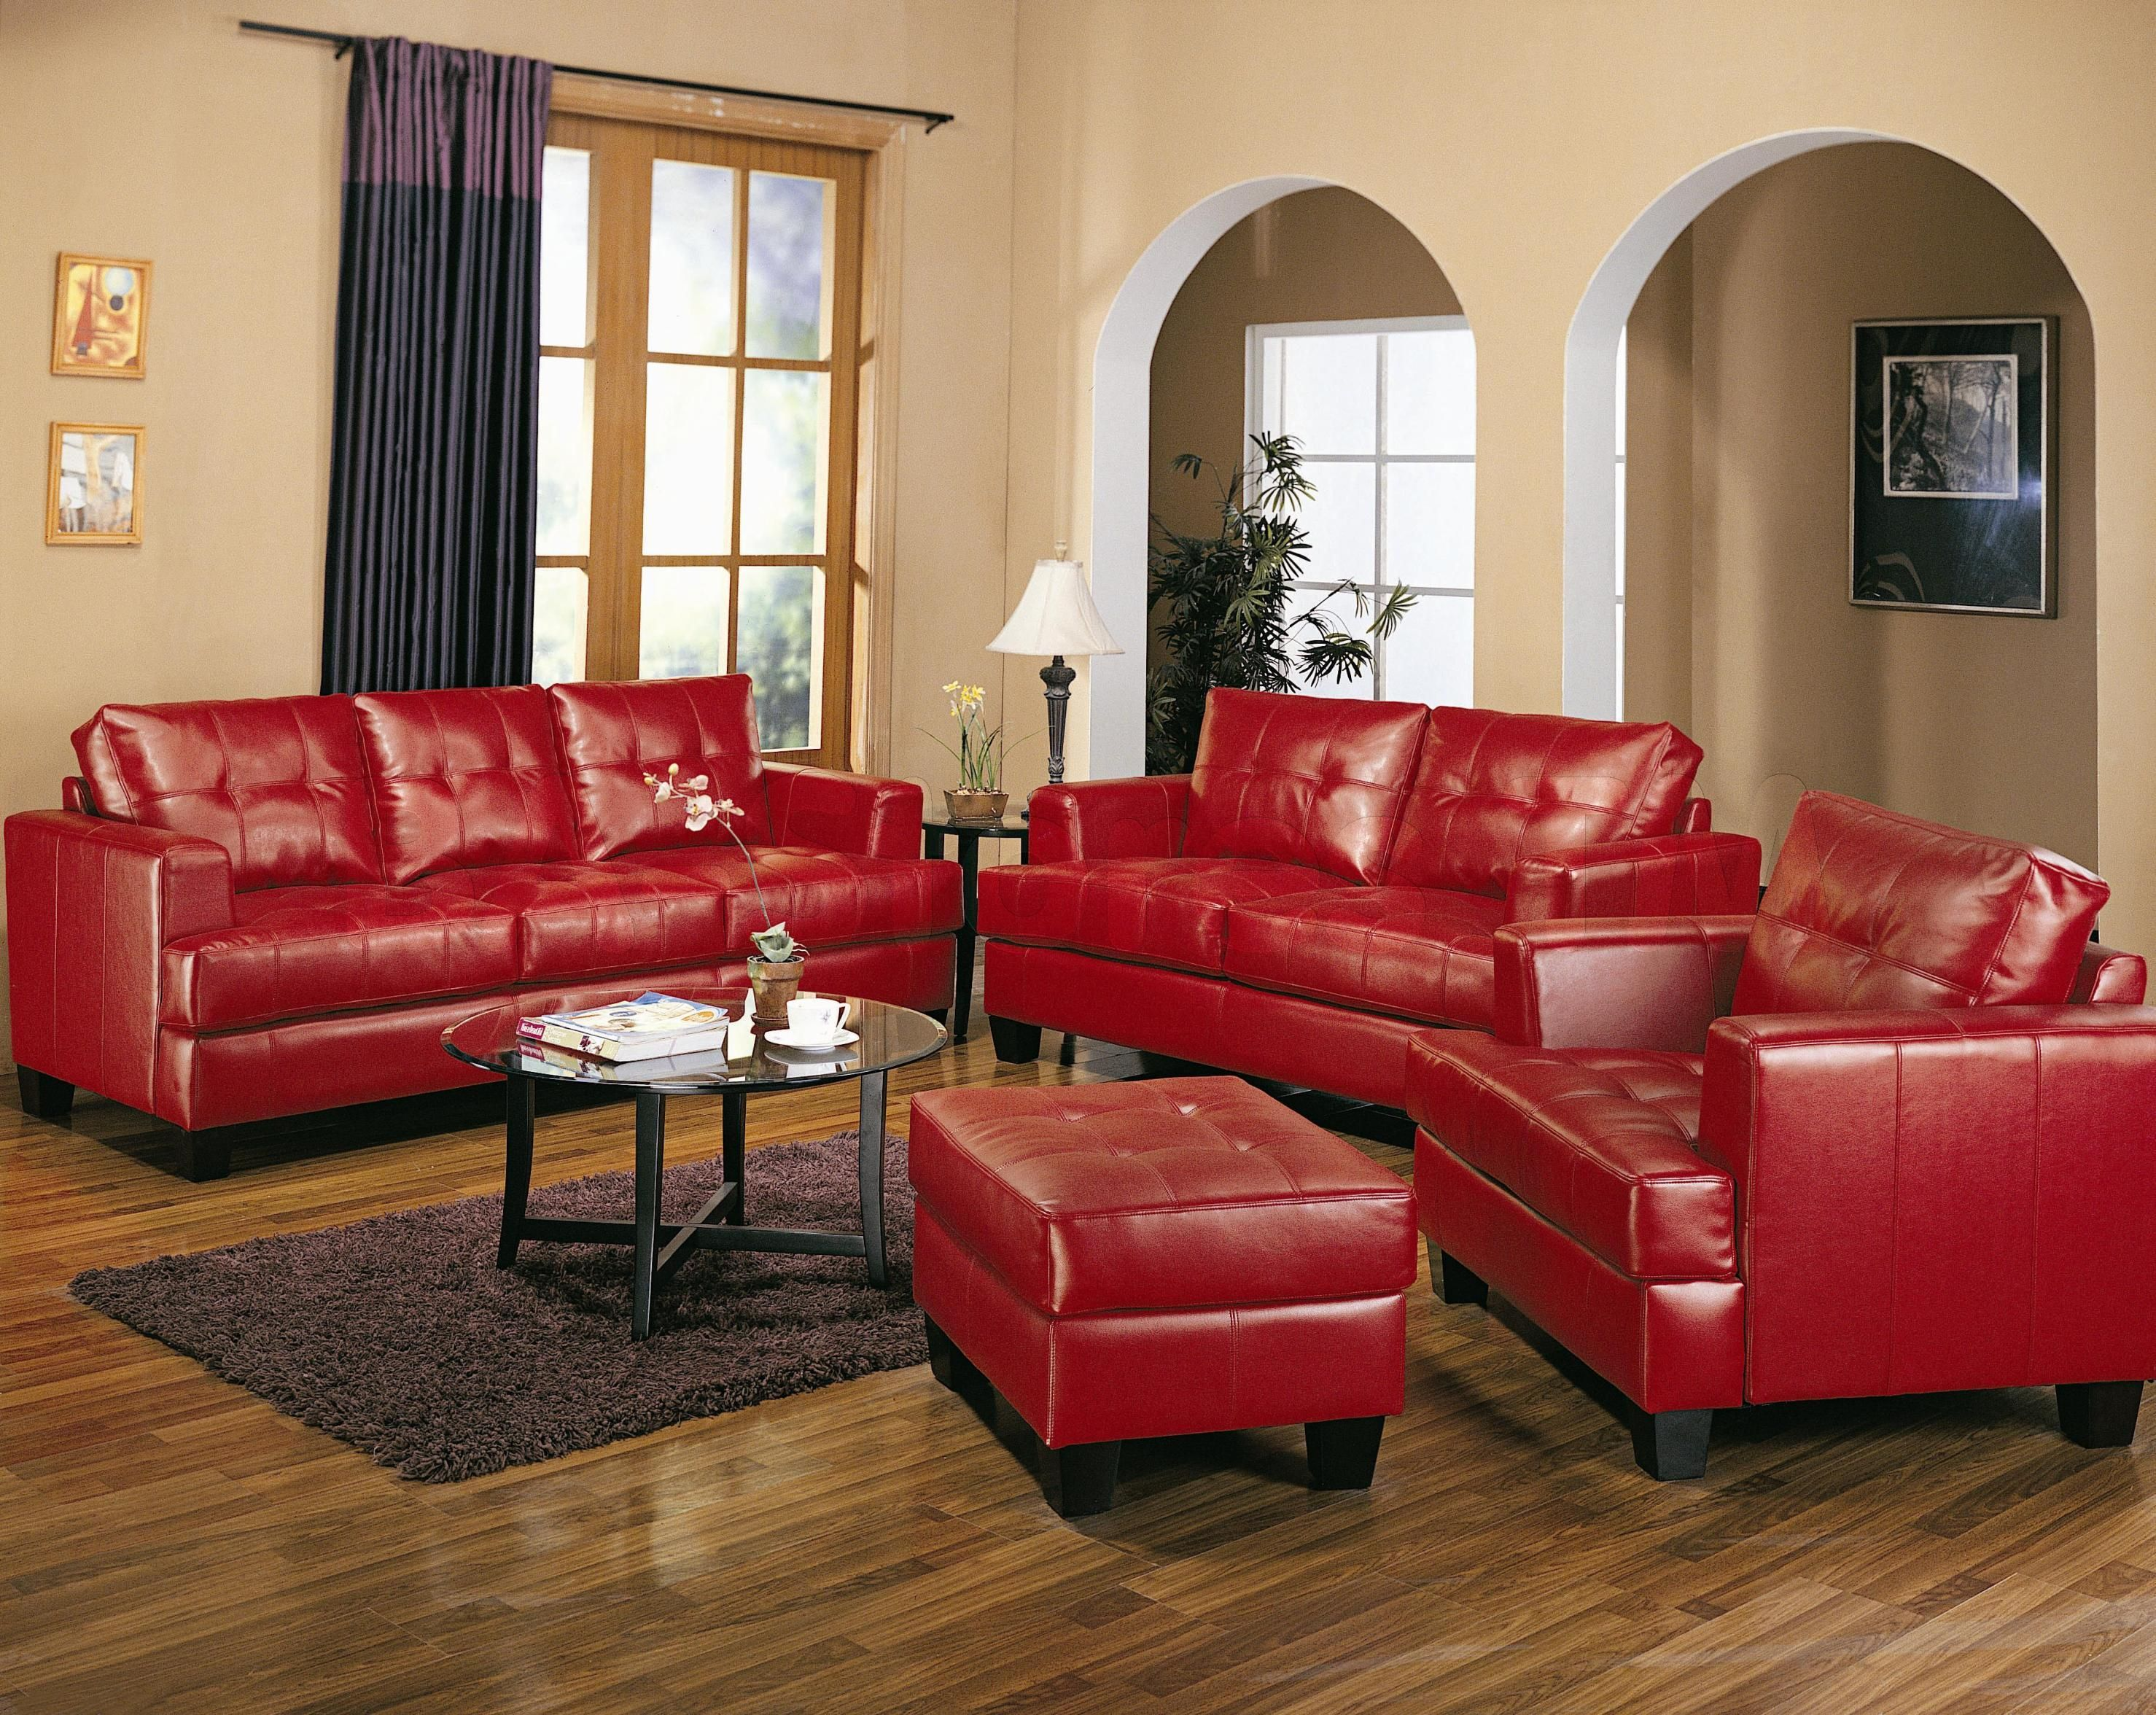 Red Sofa Design Living Room 1000 Ideas About Red Couch Decorating On Pinterest Red Couch